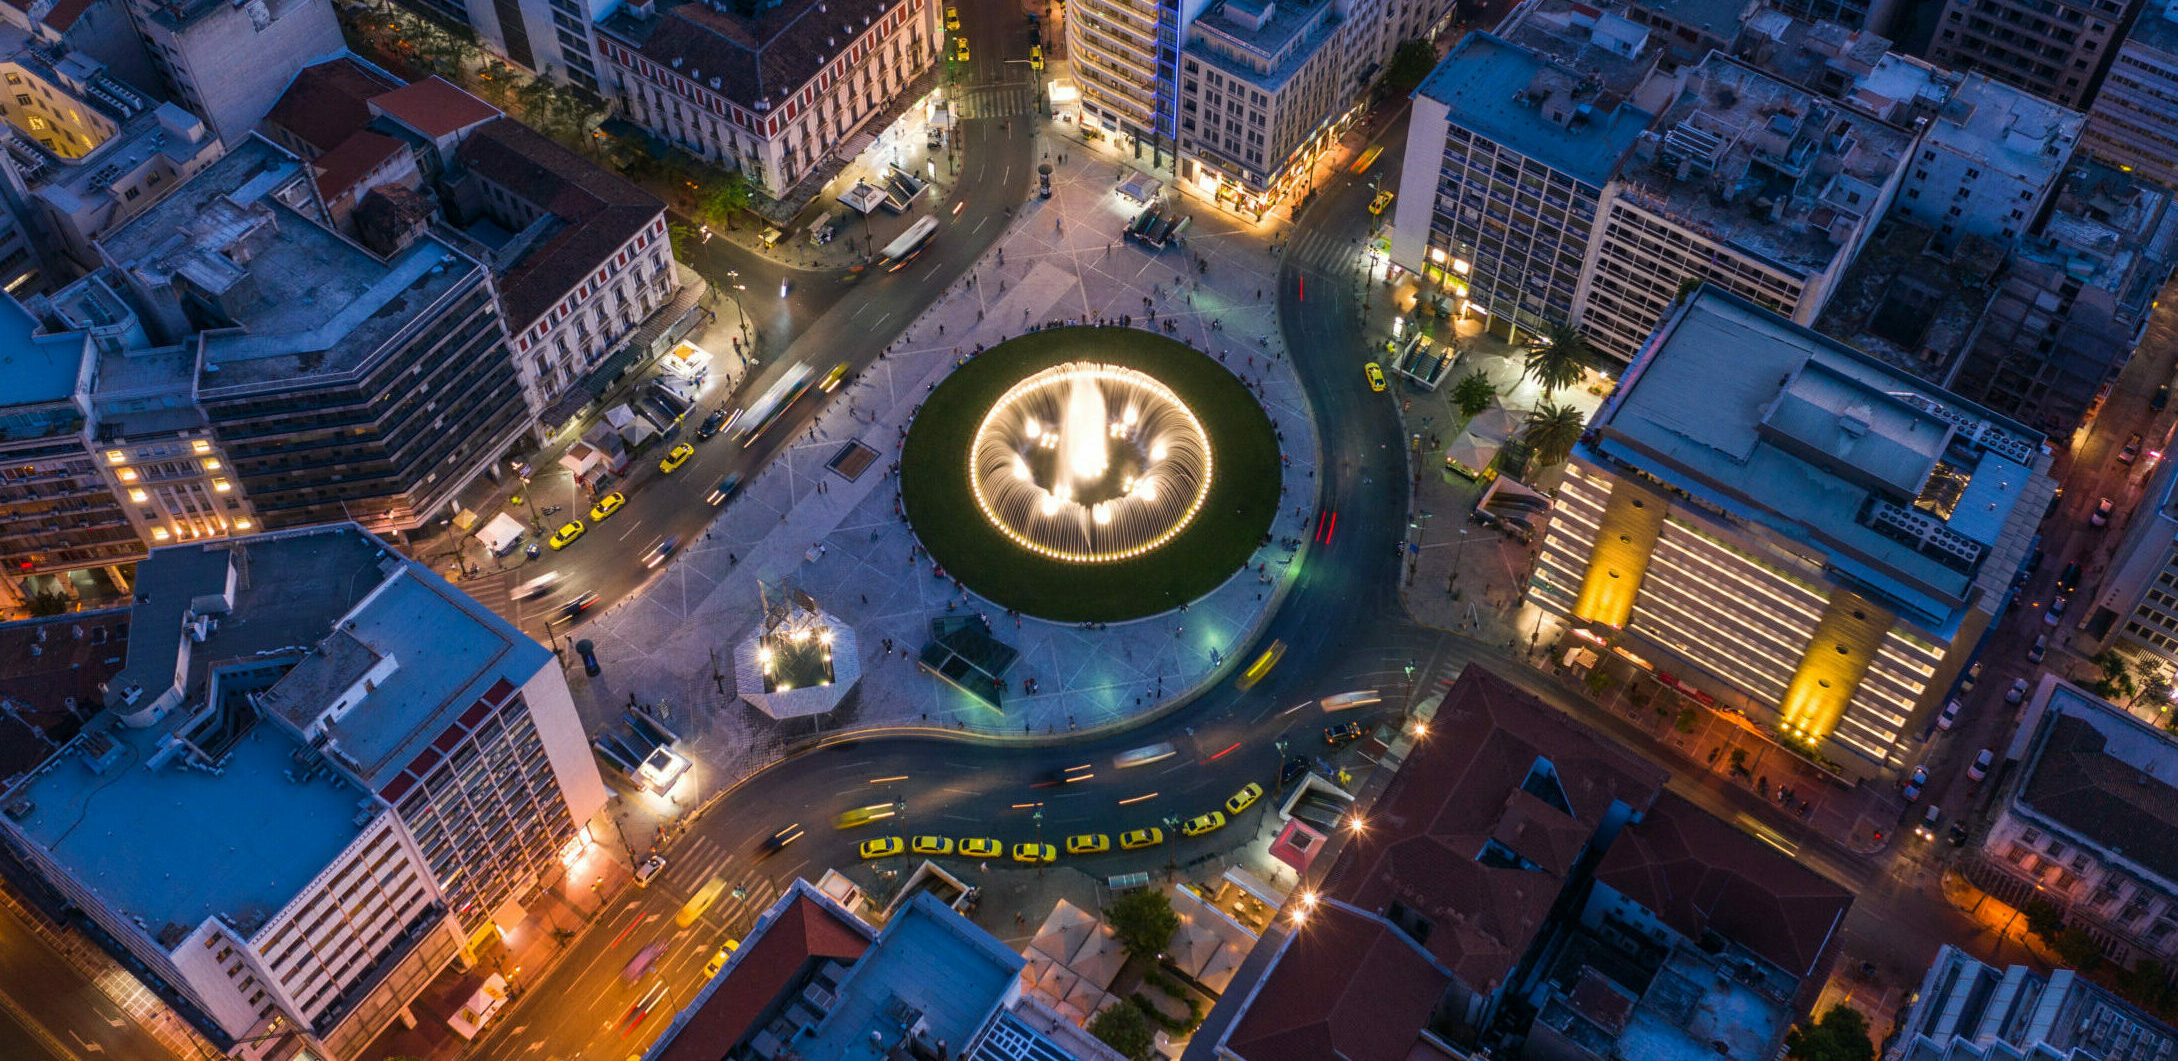 The 9 Muses of Omonia Square and the phrase that emerged from them